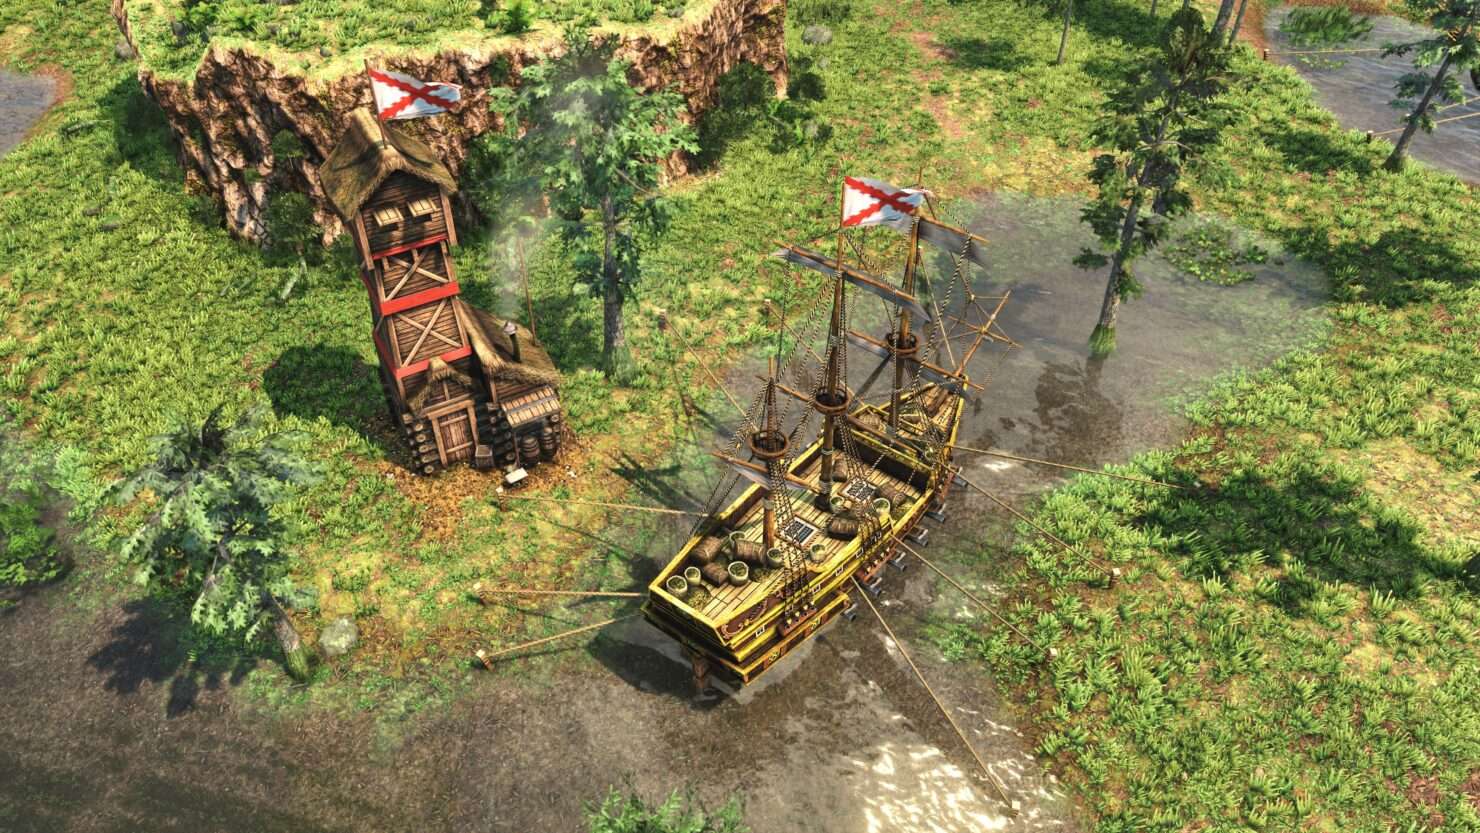 age-of-empires-iii-definitive-edition-preview-05-asset-11